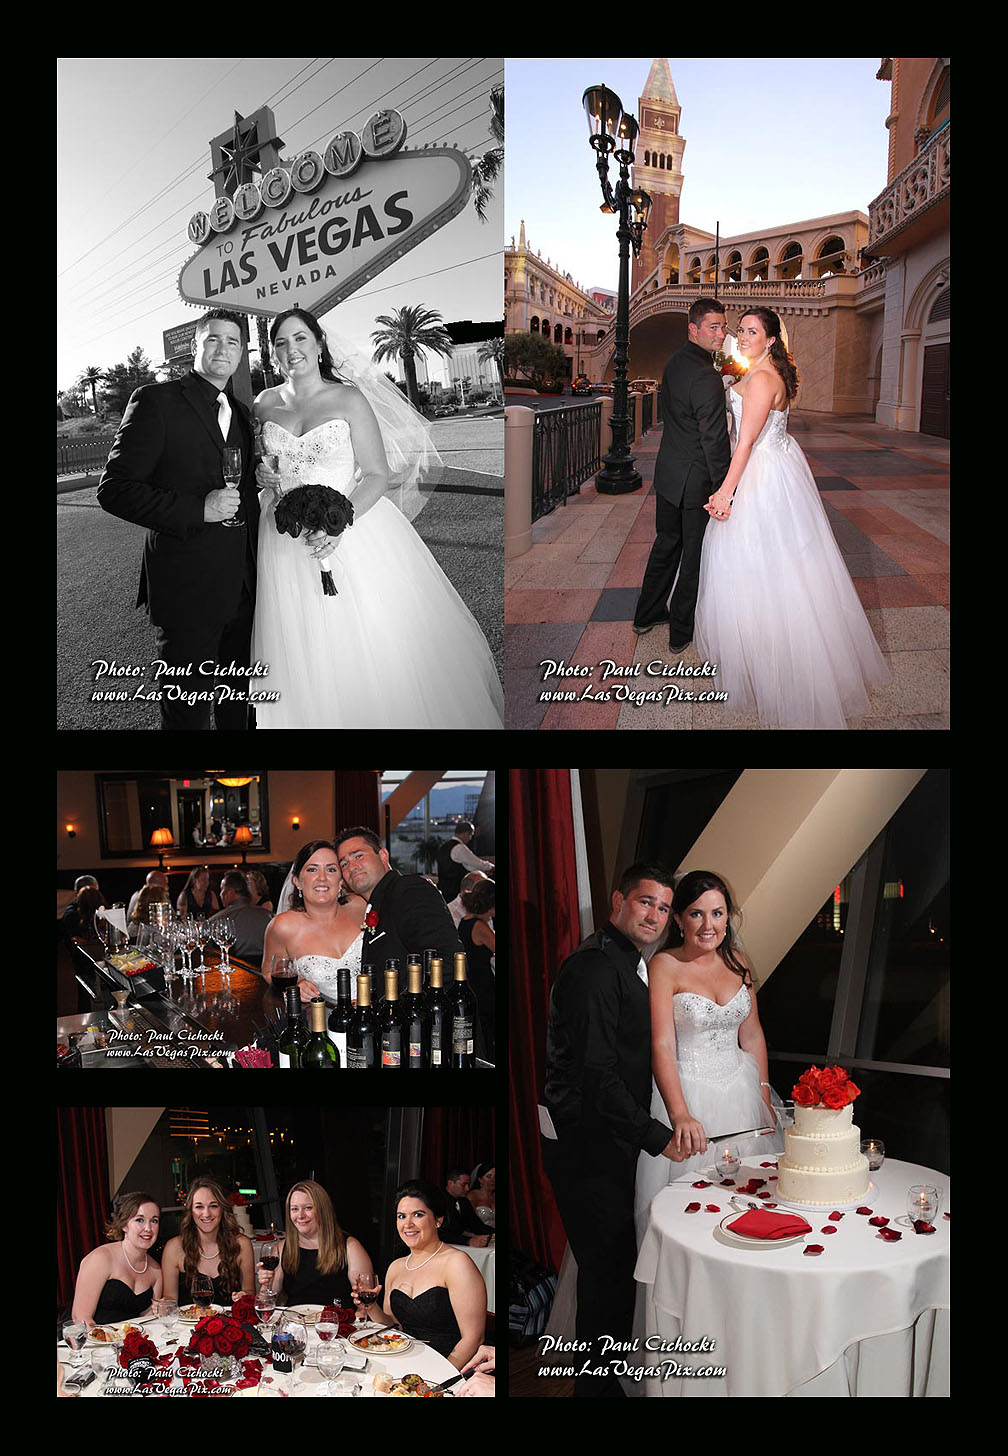 Las Vegas Wedding photographer Venetian, Vegas sign, Maggianos, reception